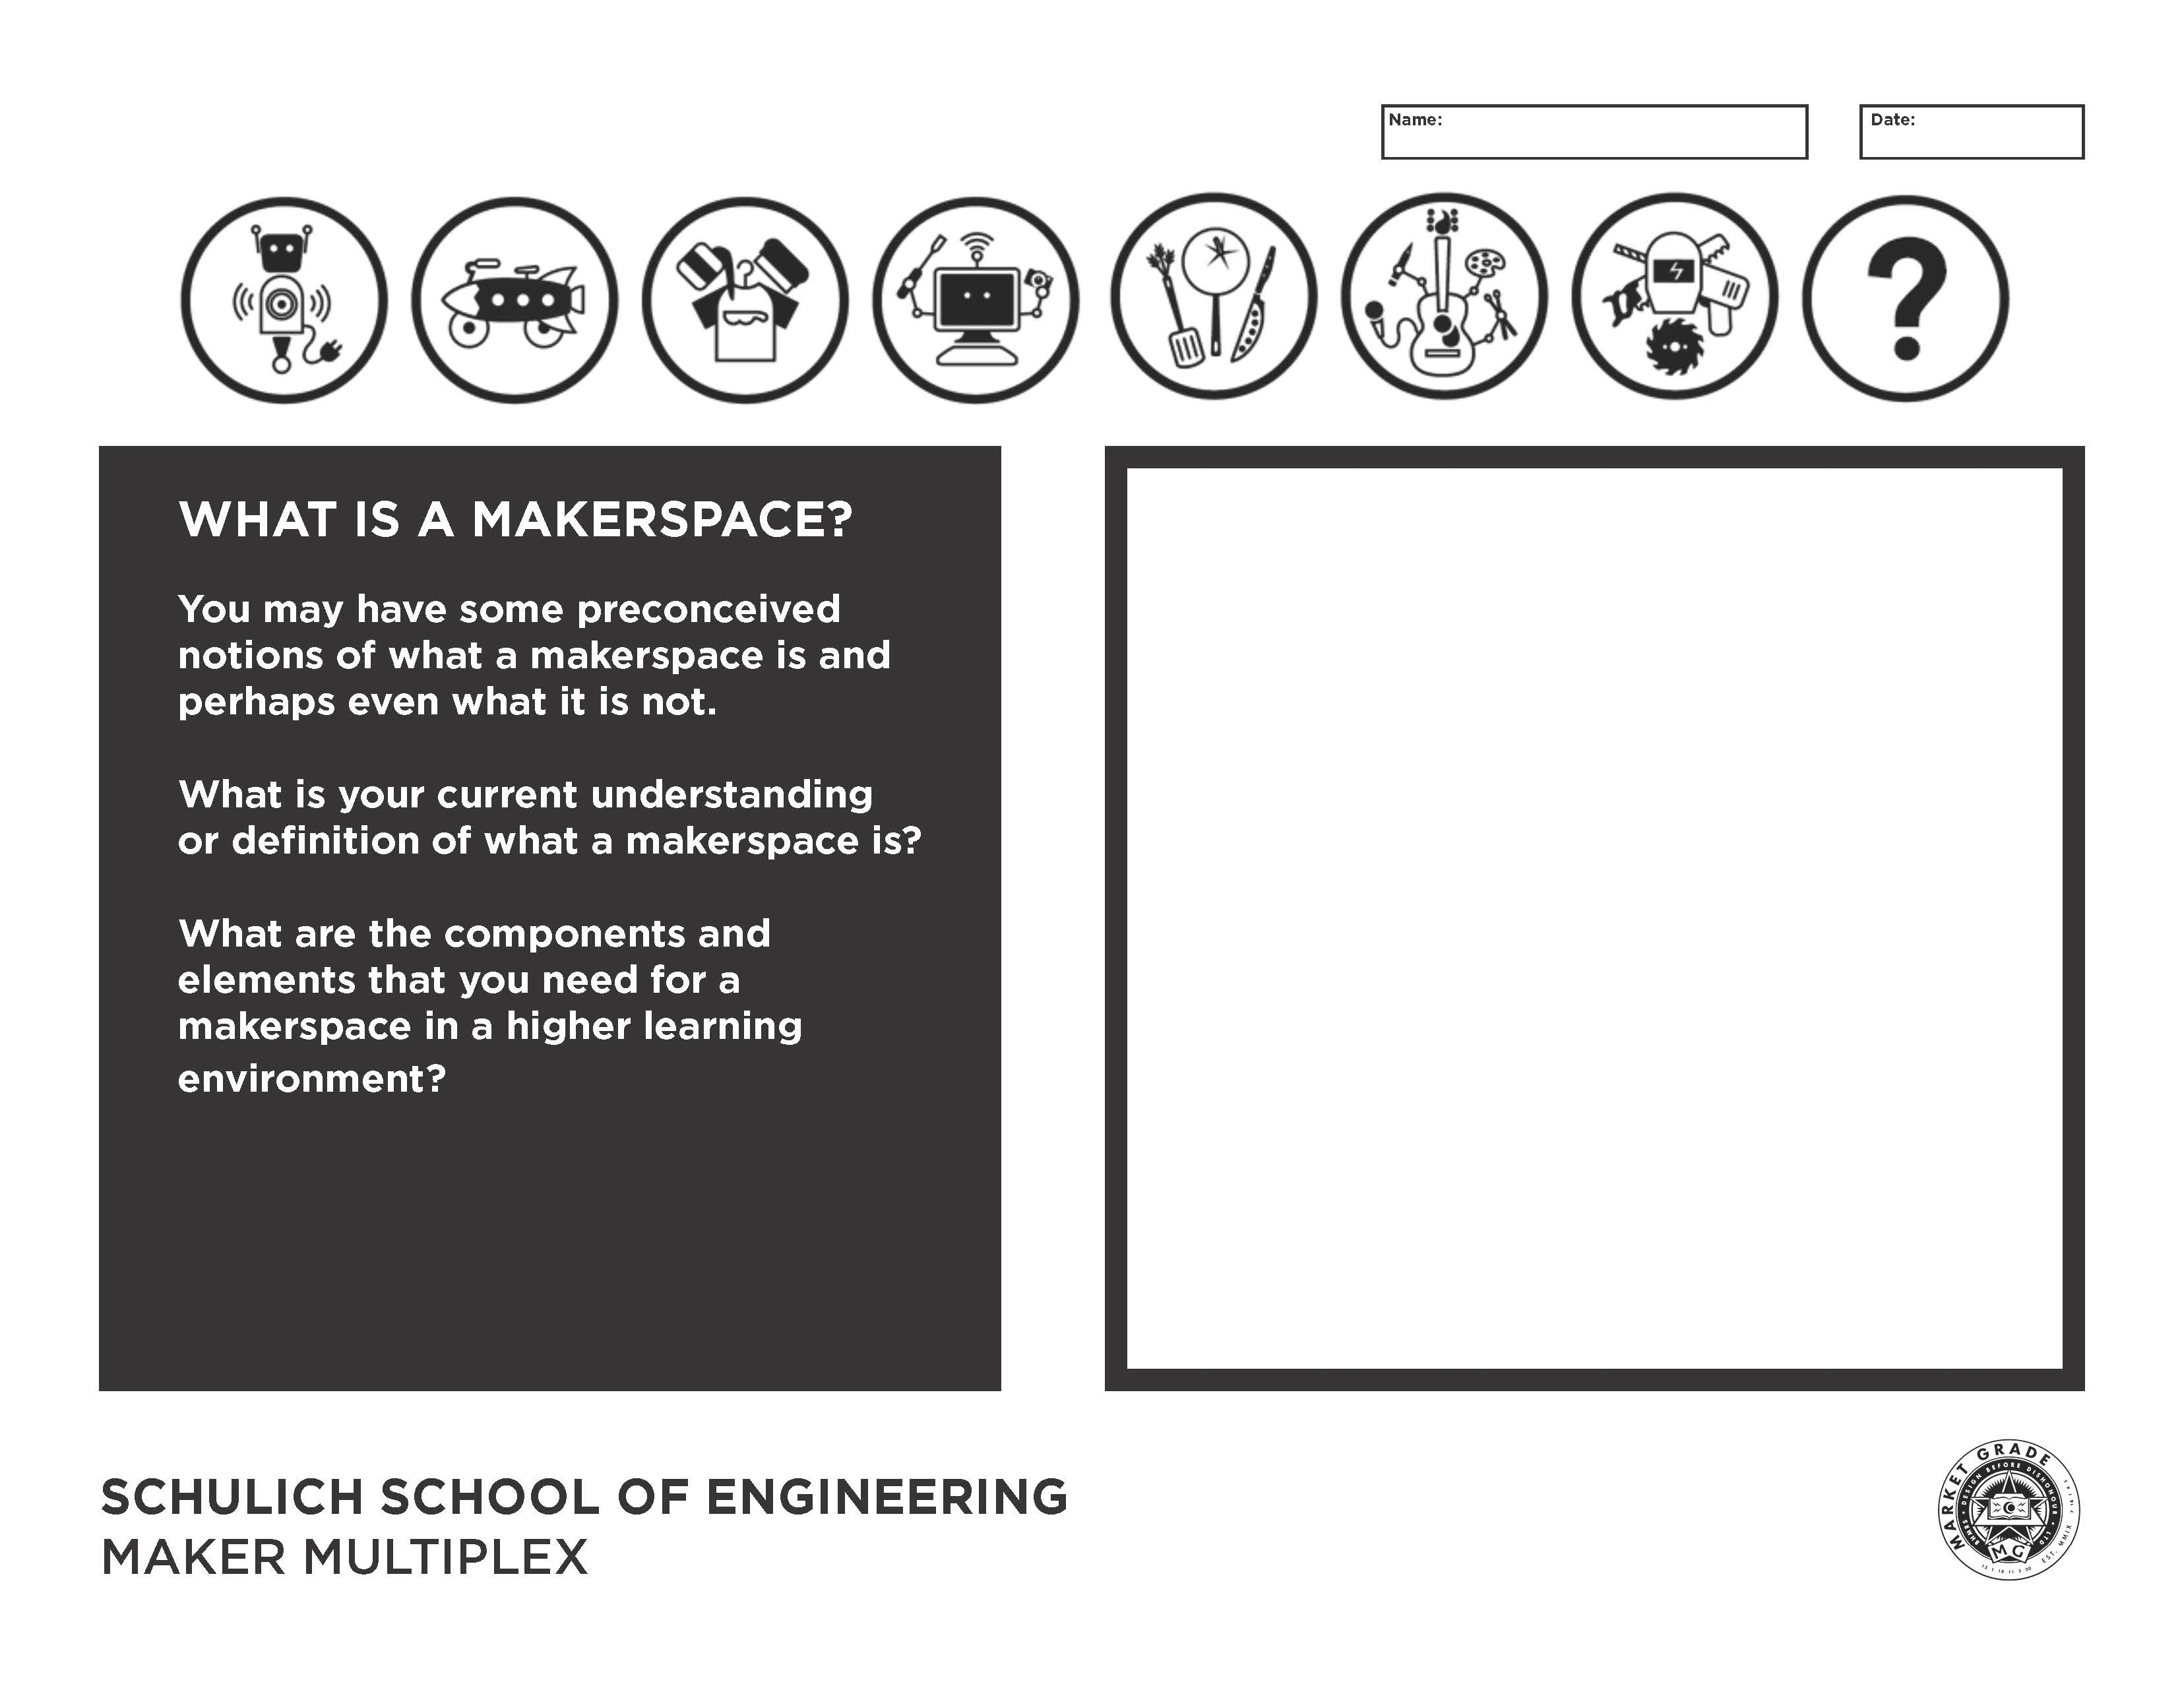 what_is_a_makerspace.jpg